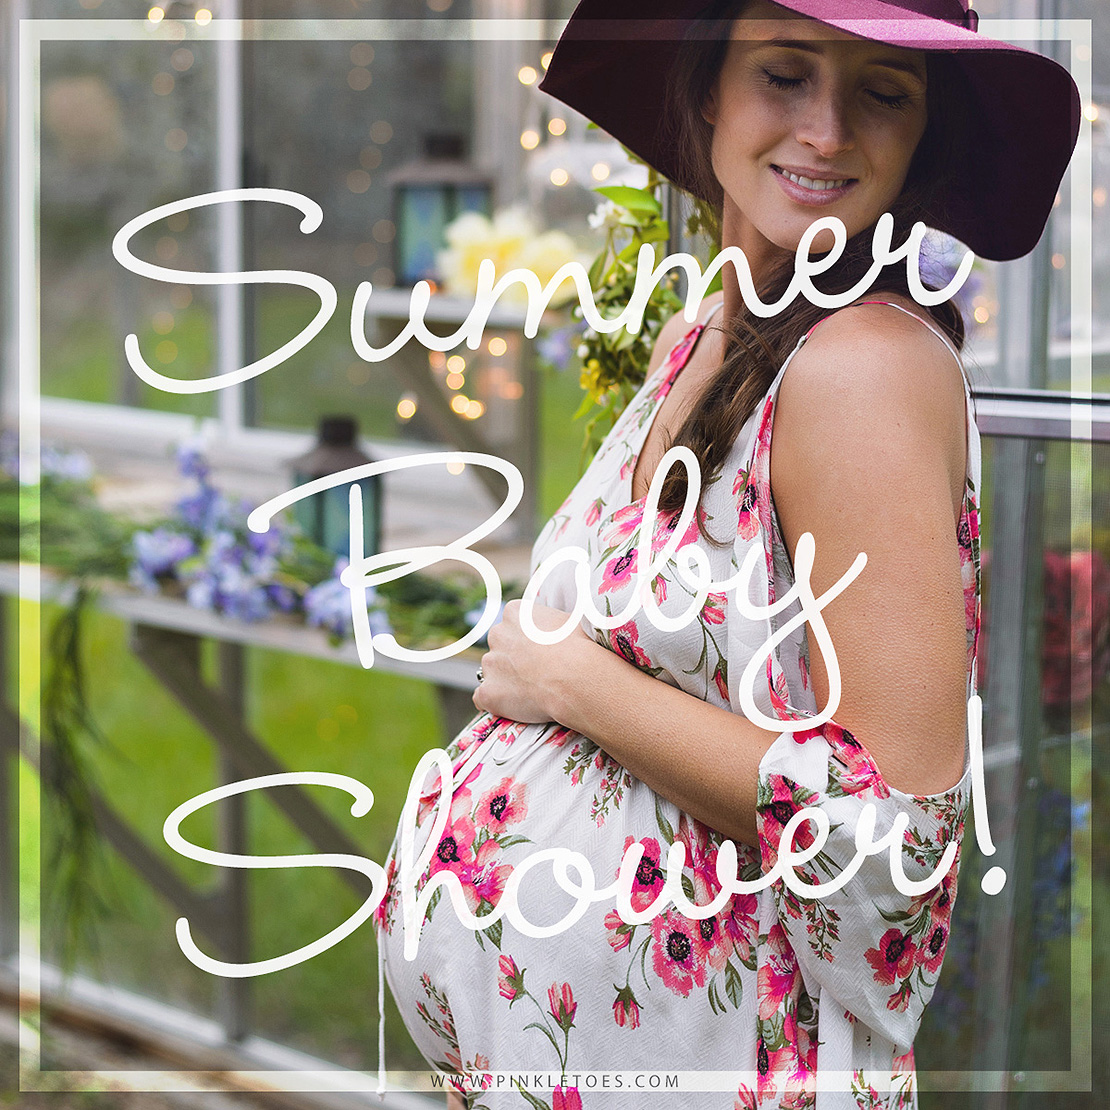 austin-texas-maternity-pregnancy-newborn-baby-photography-summer-baby-shower